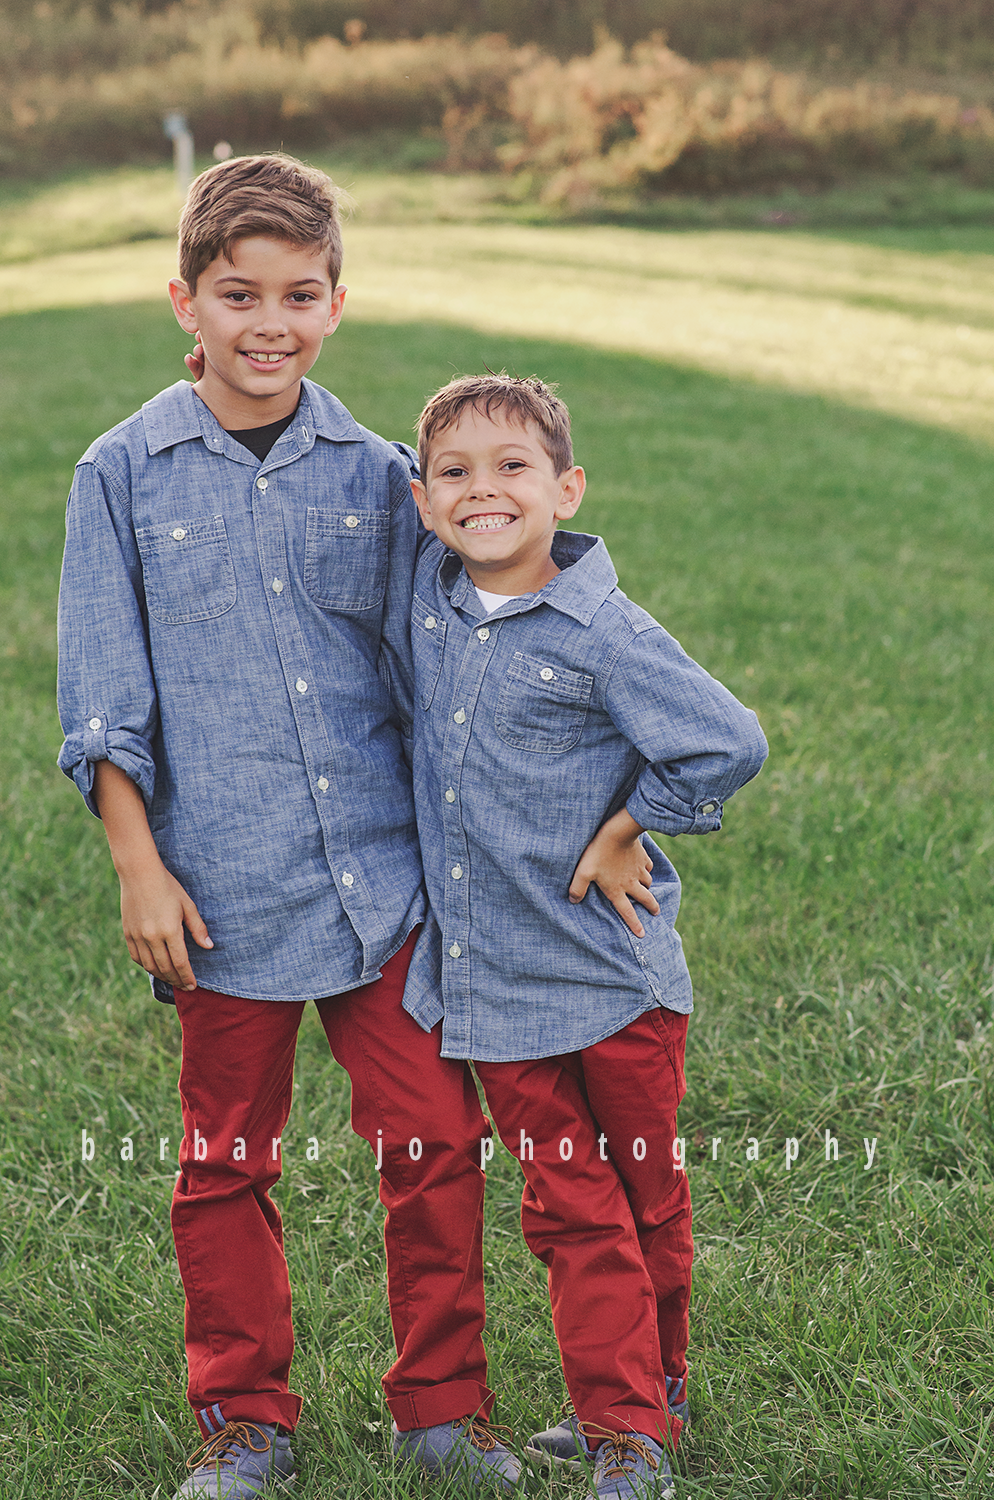 bjp-family-photographer-kids-siblings-blended-brothers-sisters-fall-mini-sessions-children-love-rachel8.png